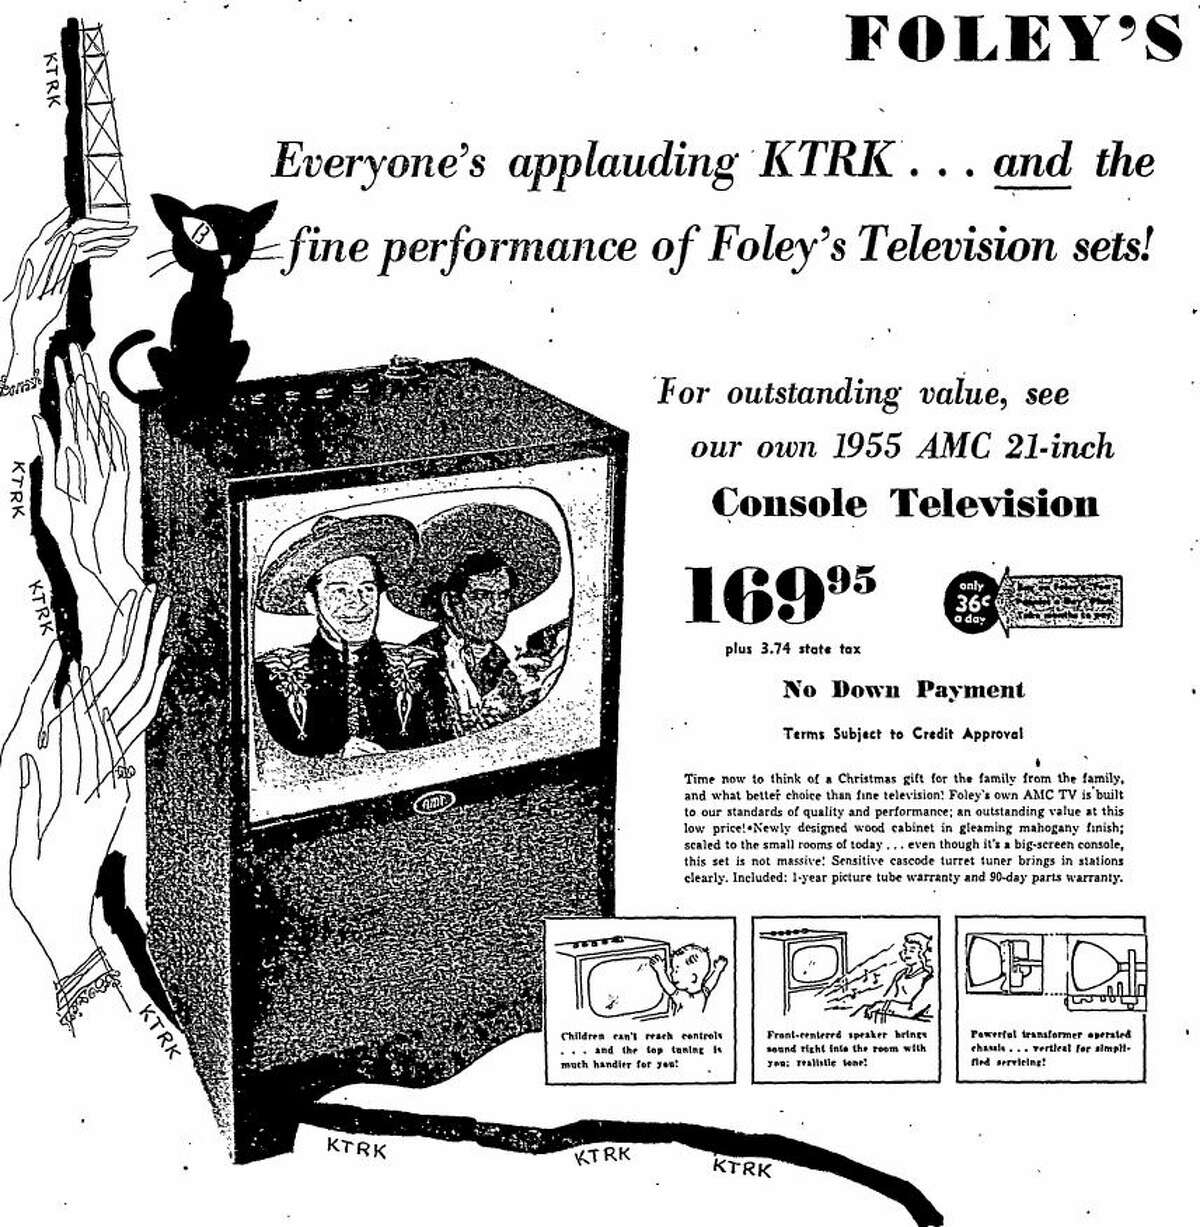 Foley's advertisement published in the Houston Chronicle on Nov. 19, 1954.